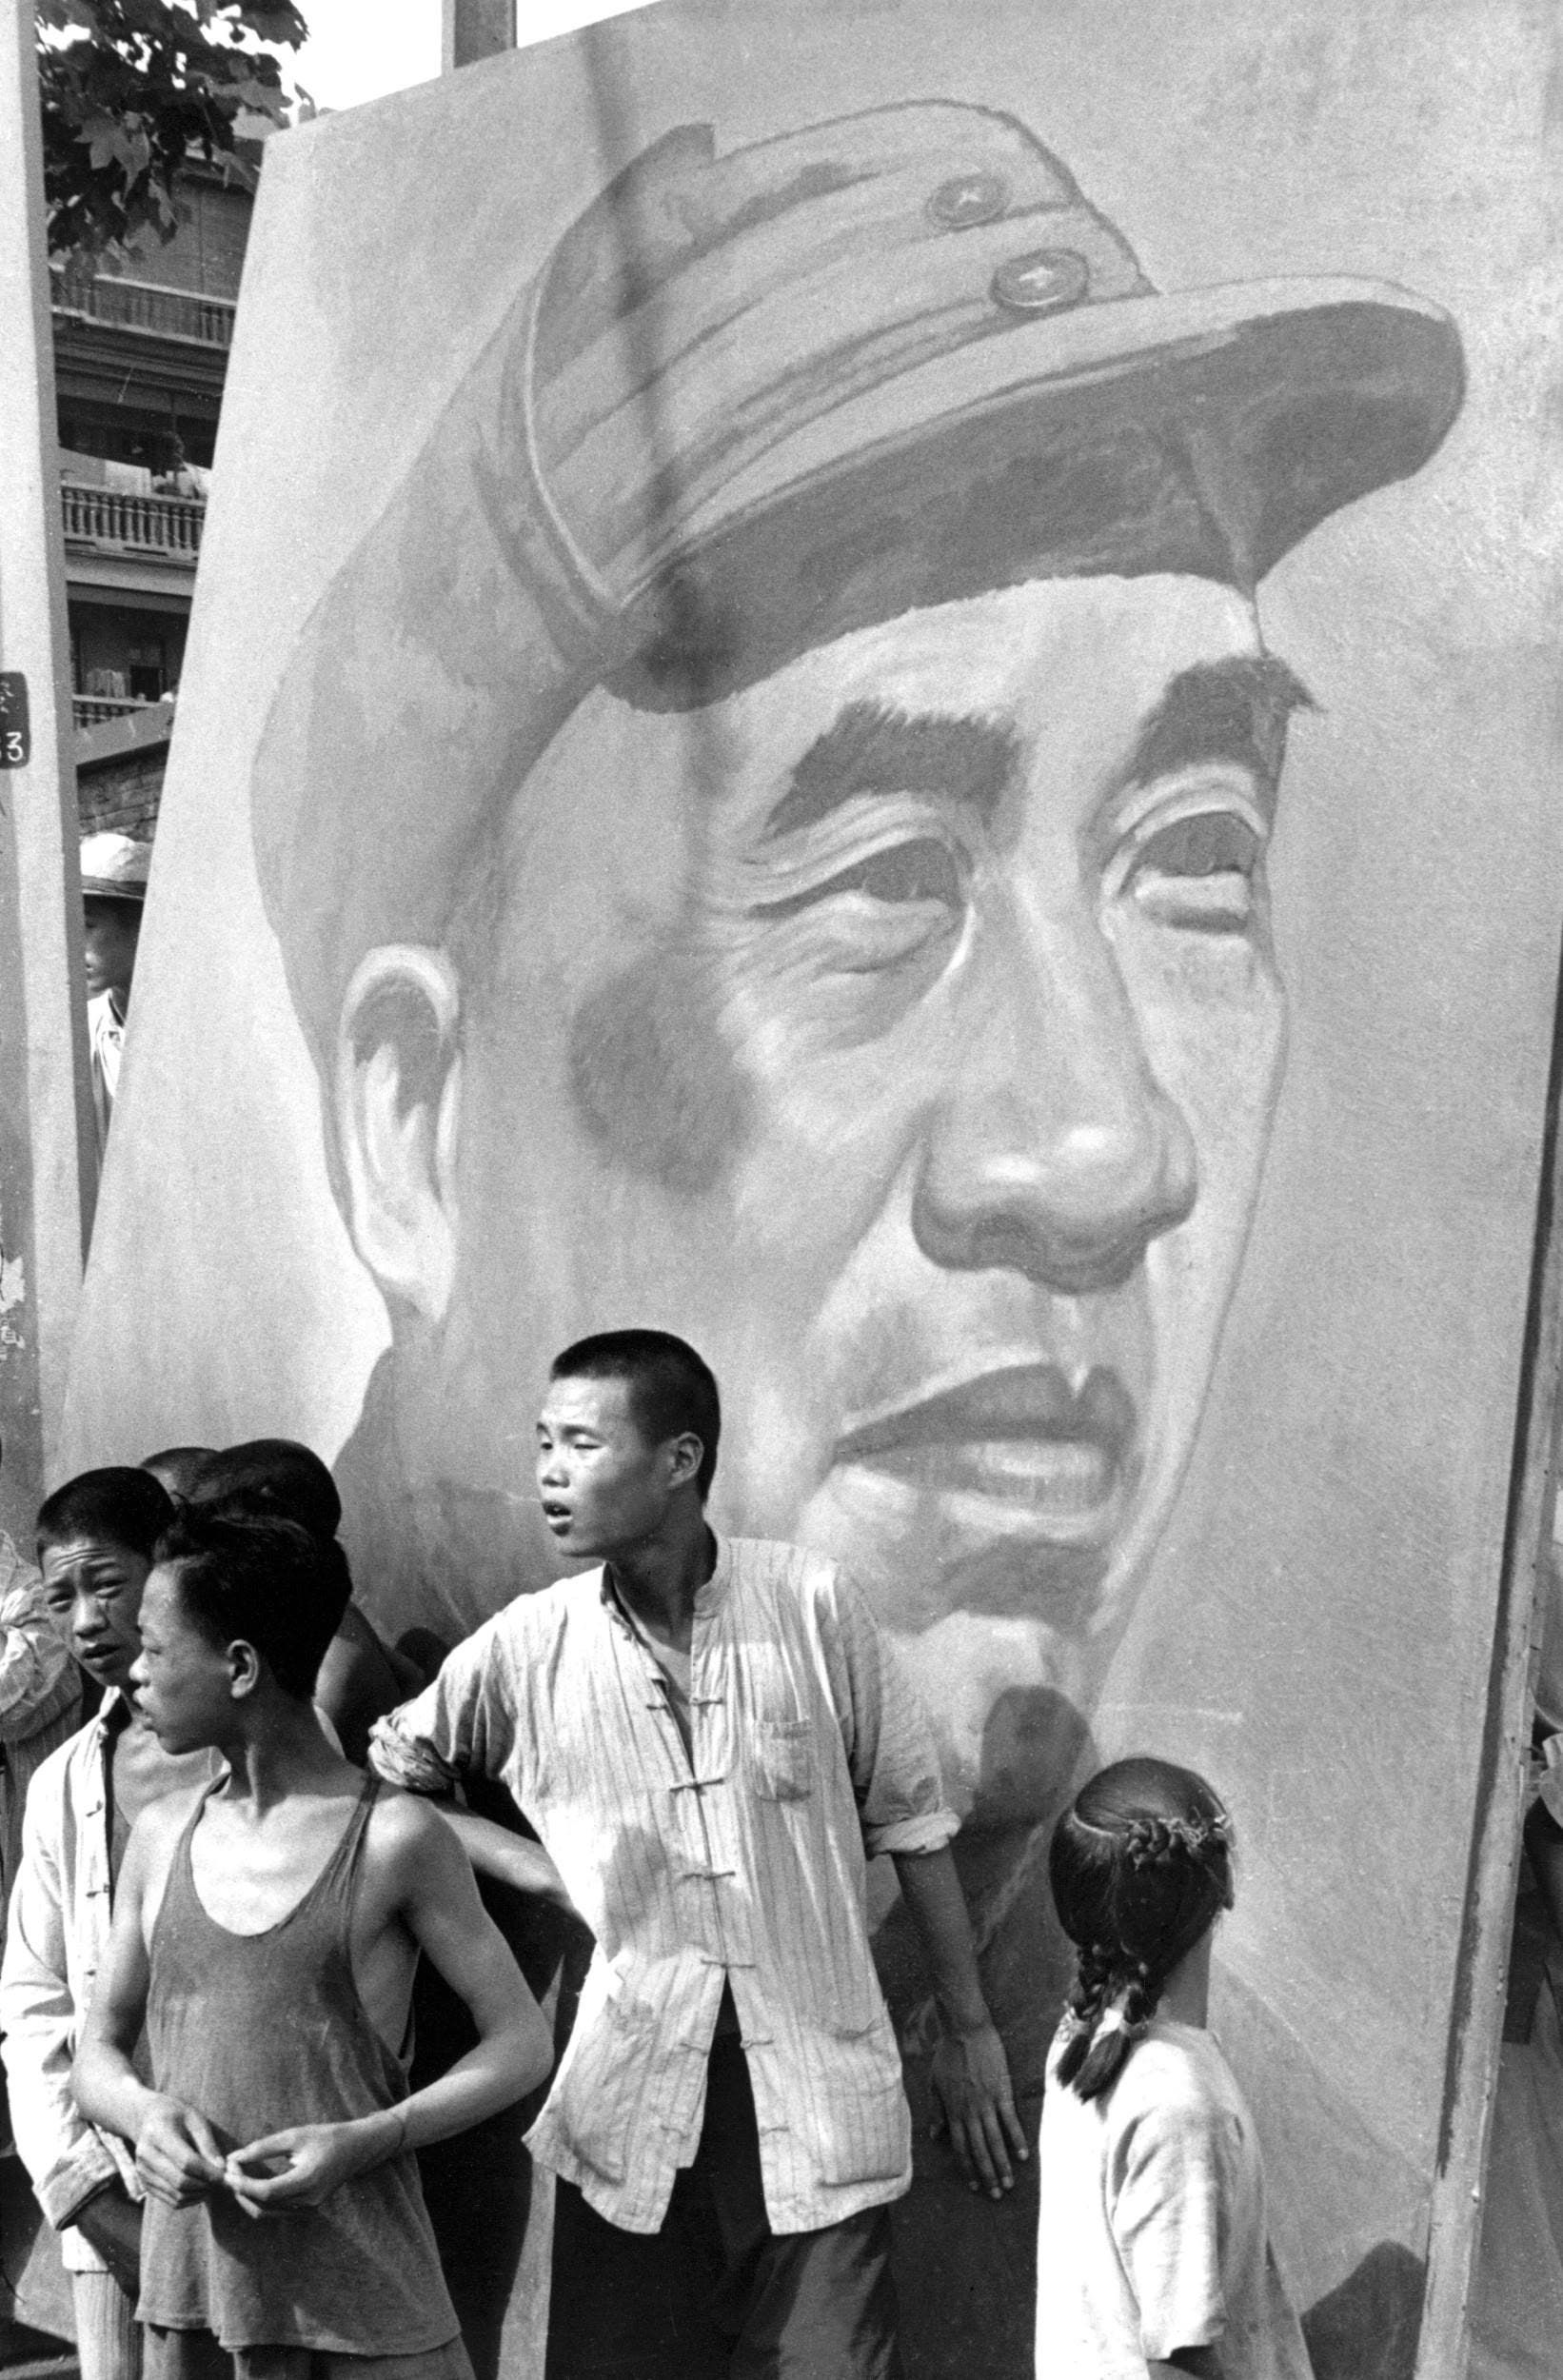 Historic Henri Cartier-Bresson Photos of China to Be Exhibited for the First Time